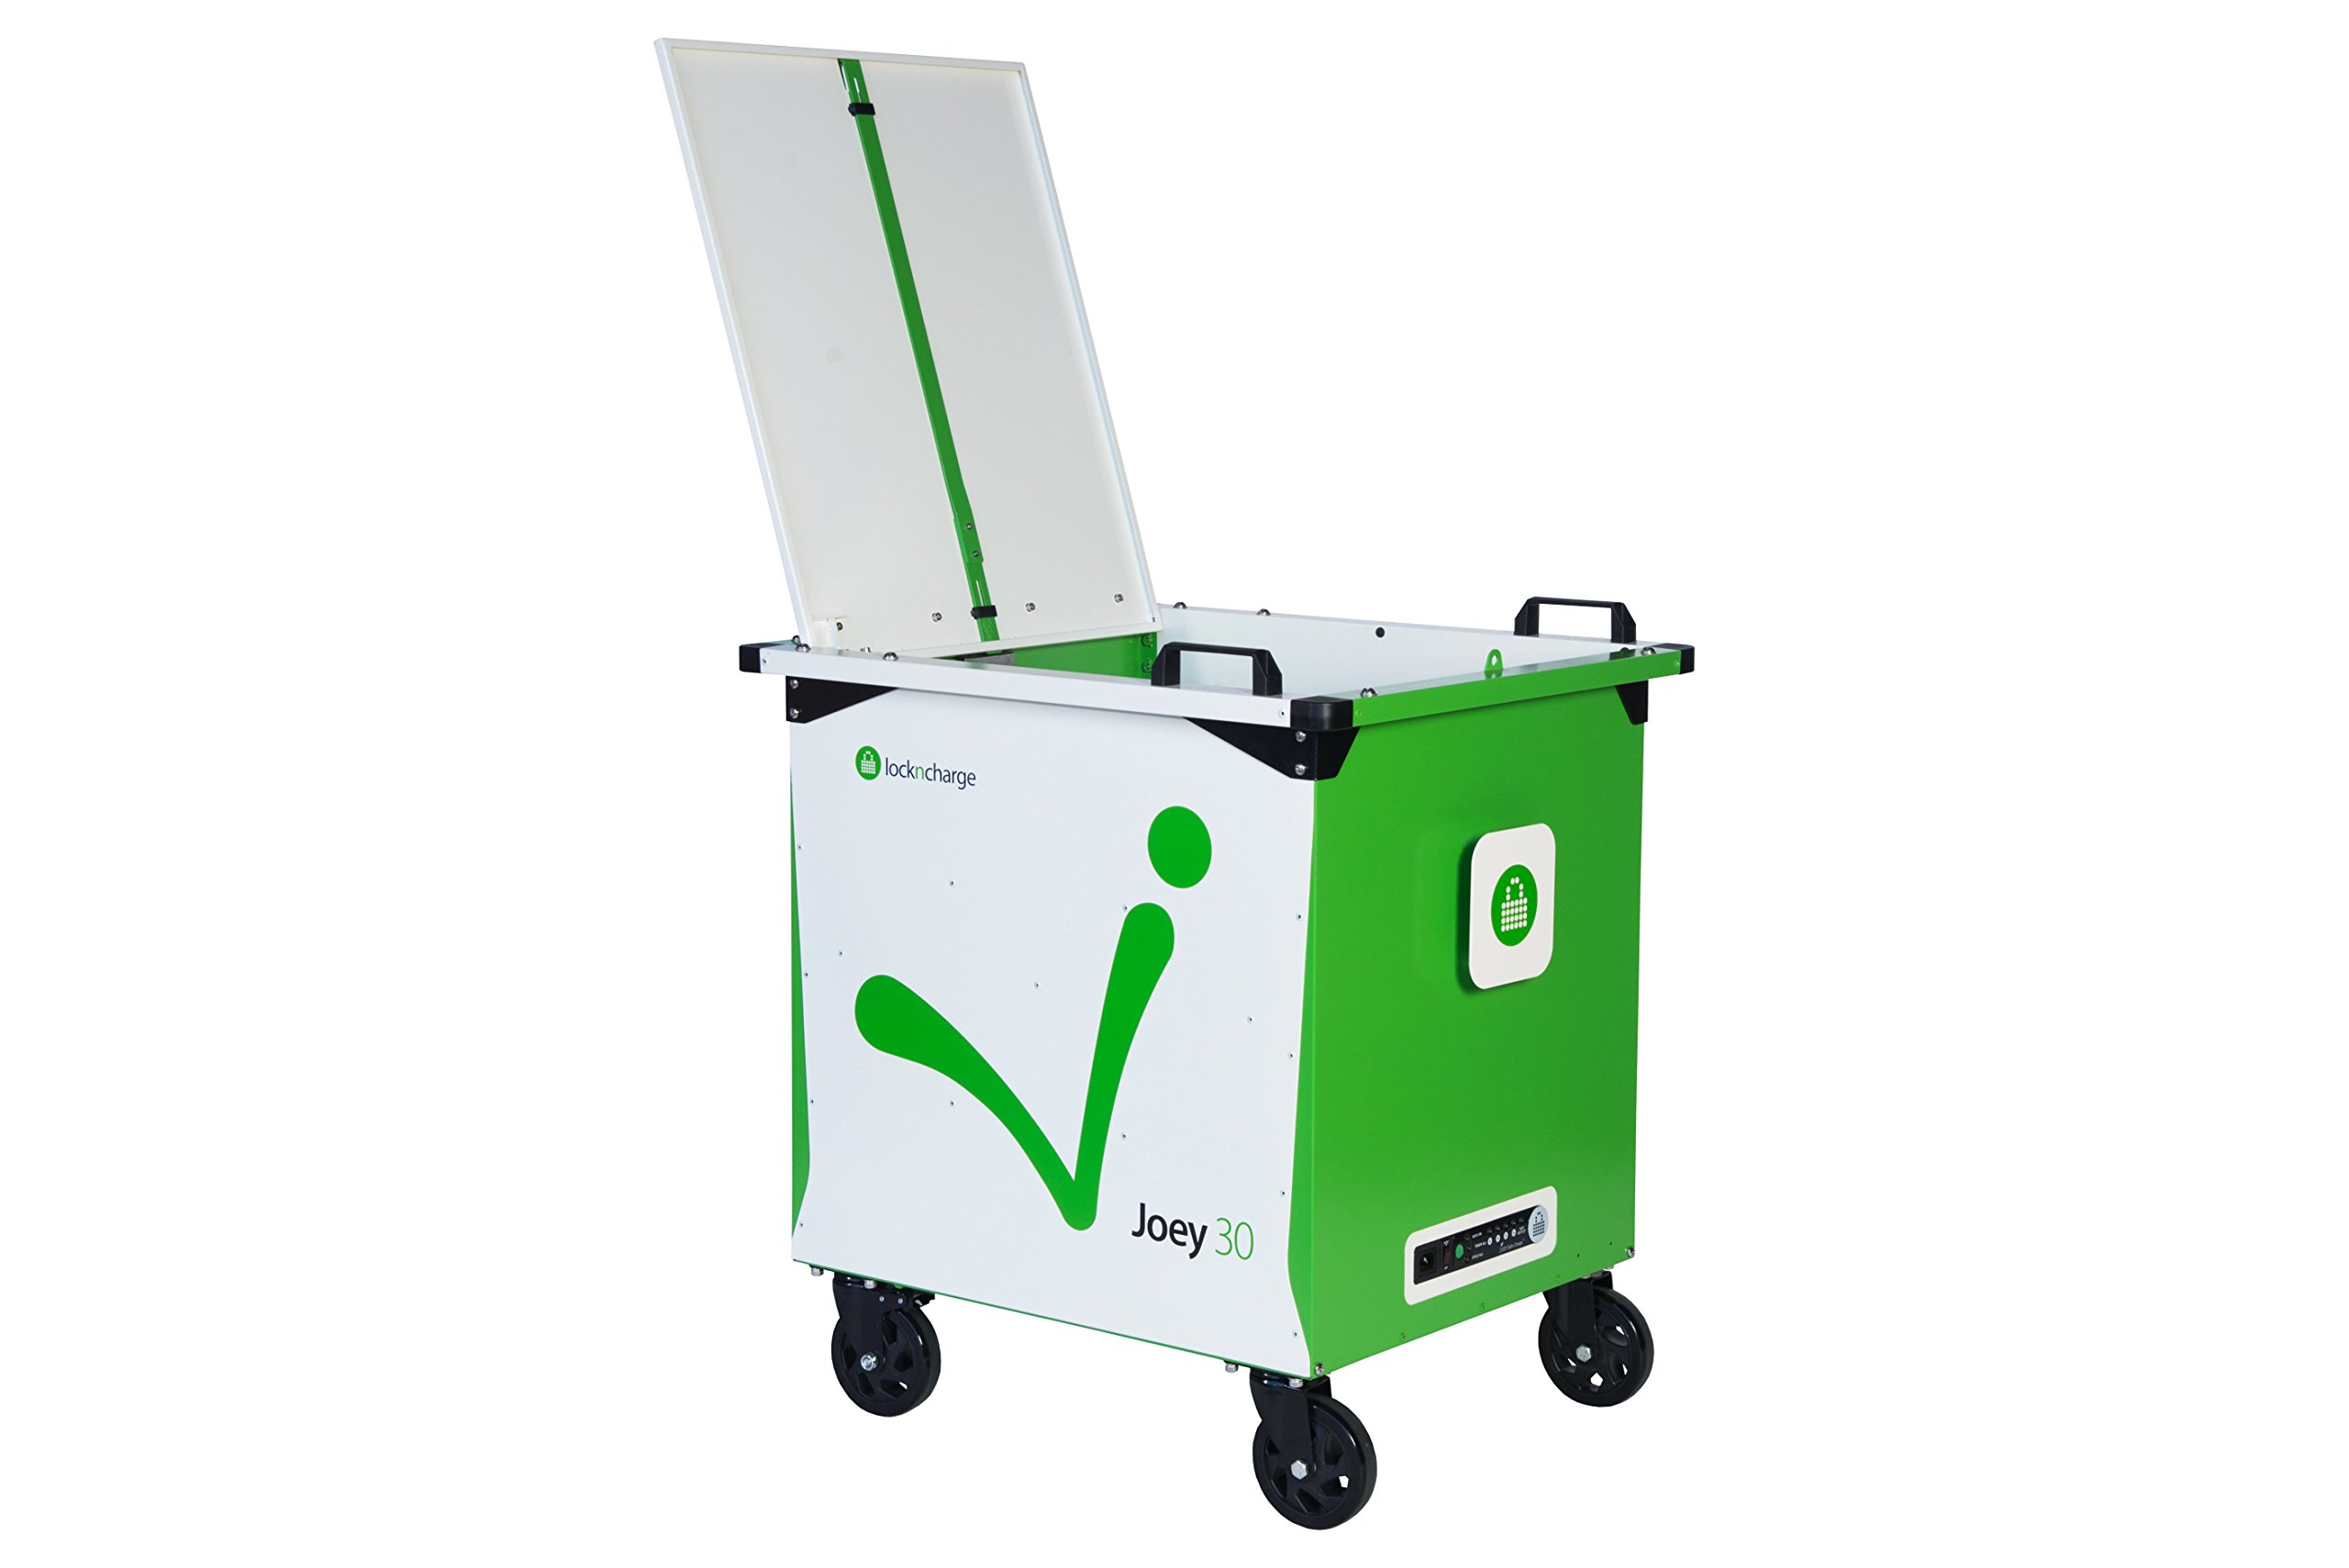 LocknCharge 10148 Joey 30 Cart, Green/White by LocknCharge